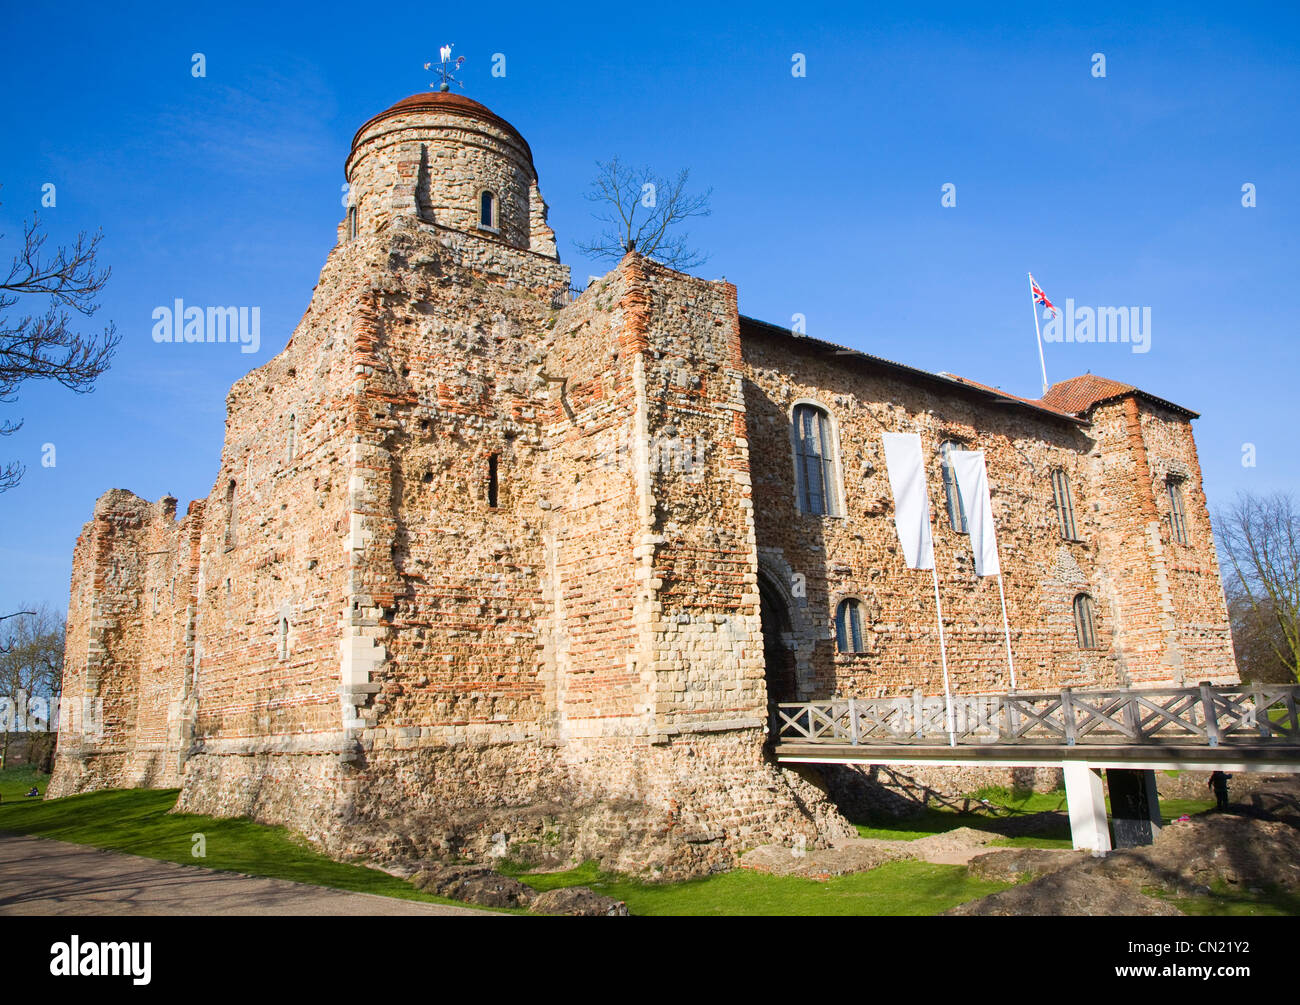 Colchester castle, Essex, England - Stock Image